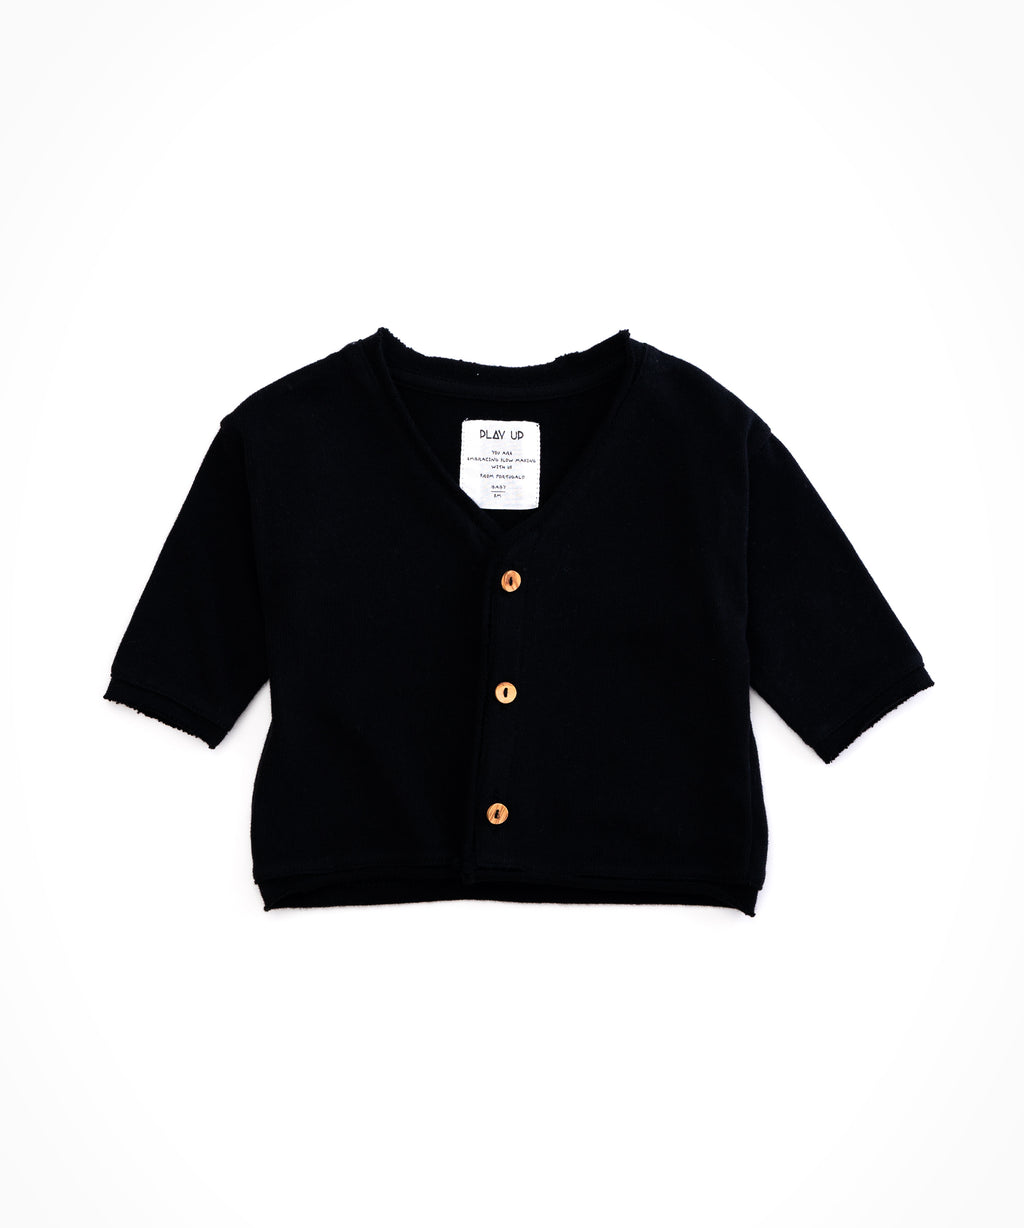 PLAY-UP / Jersey cardigan, BABY